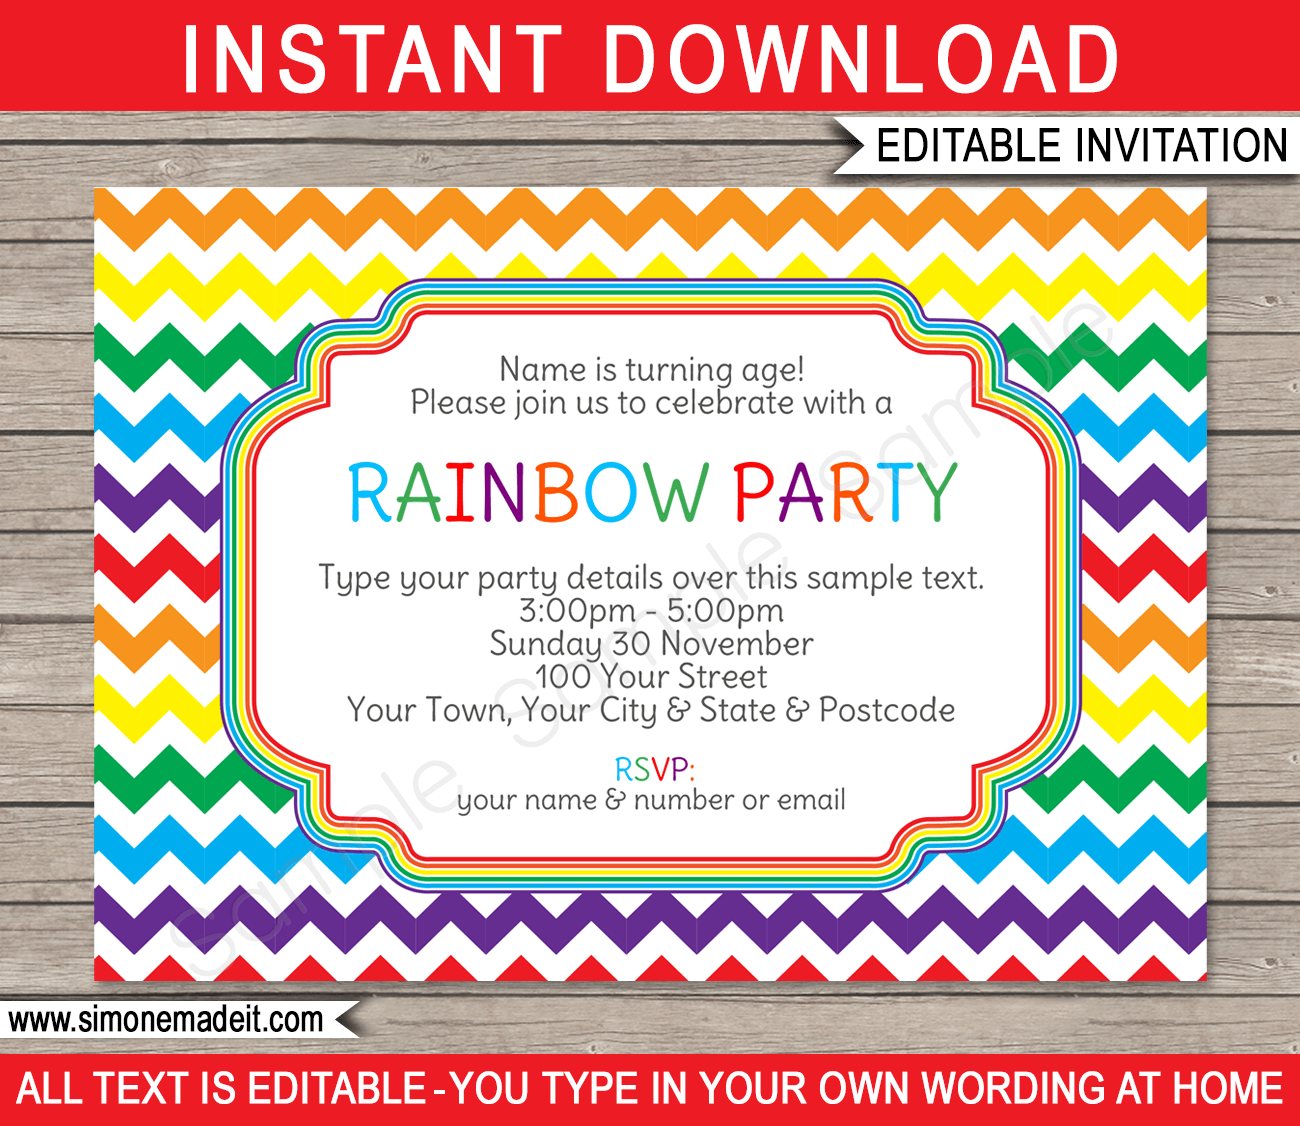 Rainbow Party Invitations Template – Lego Party Invitations Printable